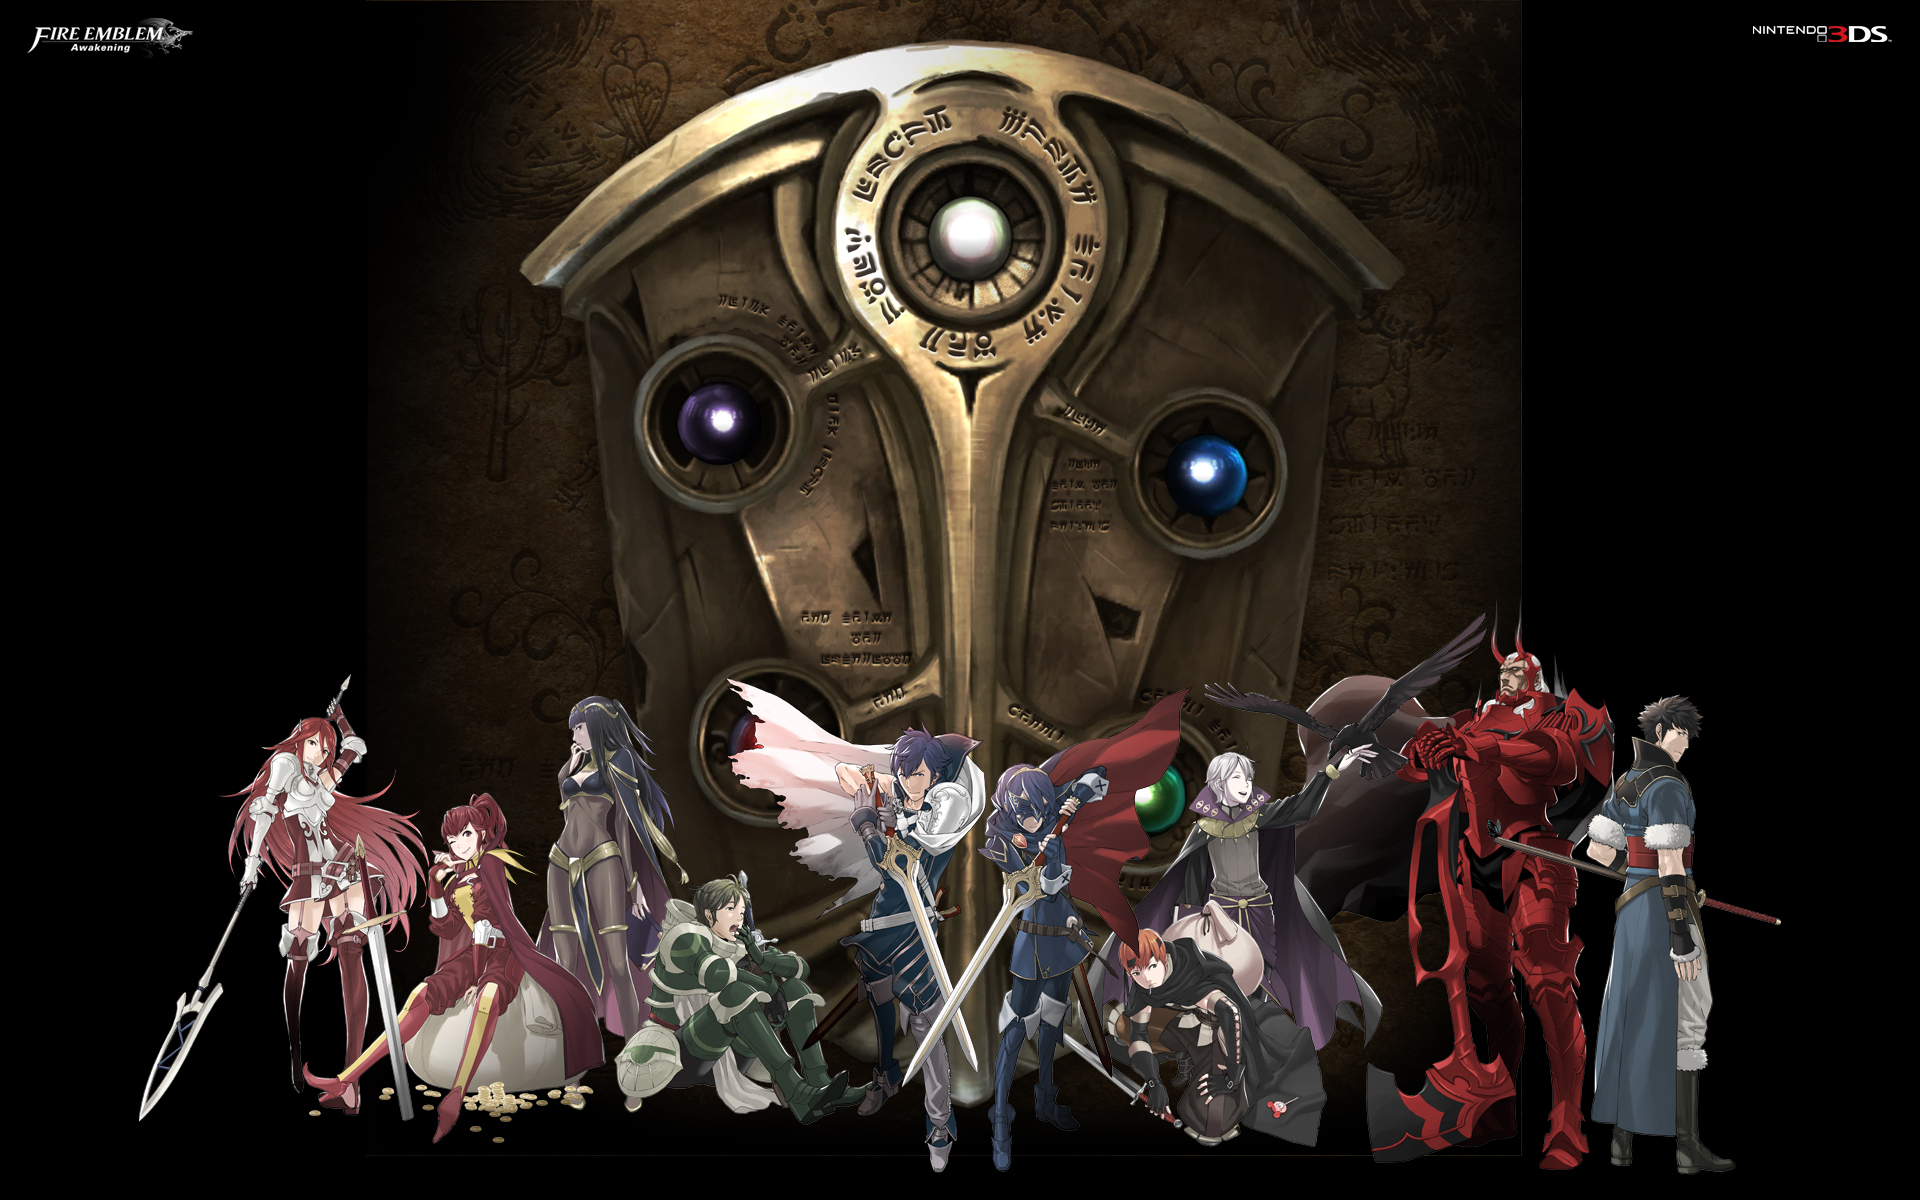 10 Most Favorite Characters In Fire Emblem Awakening Wnners America Contest Fire Emblem Know Your Meme